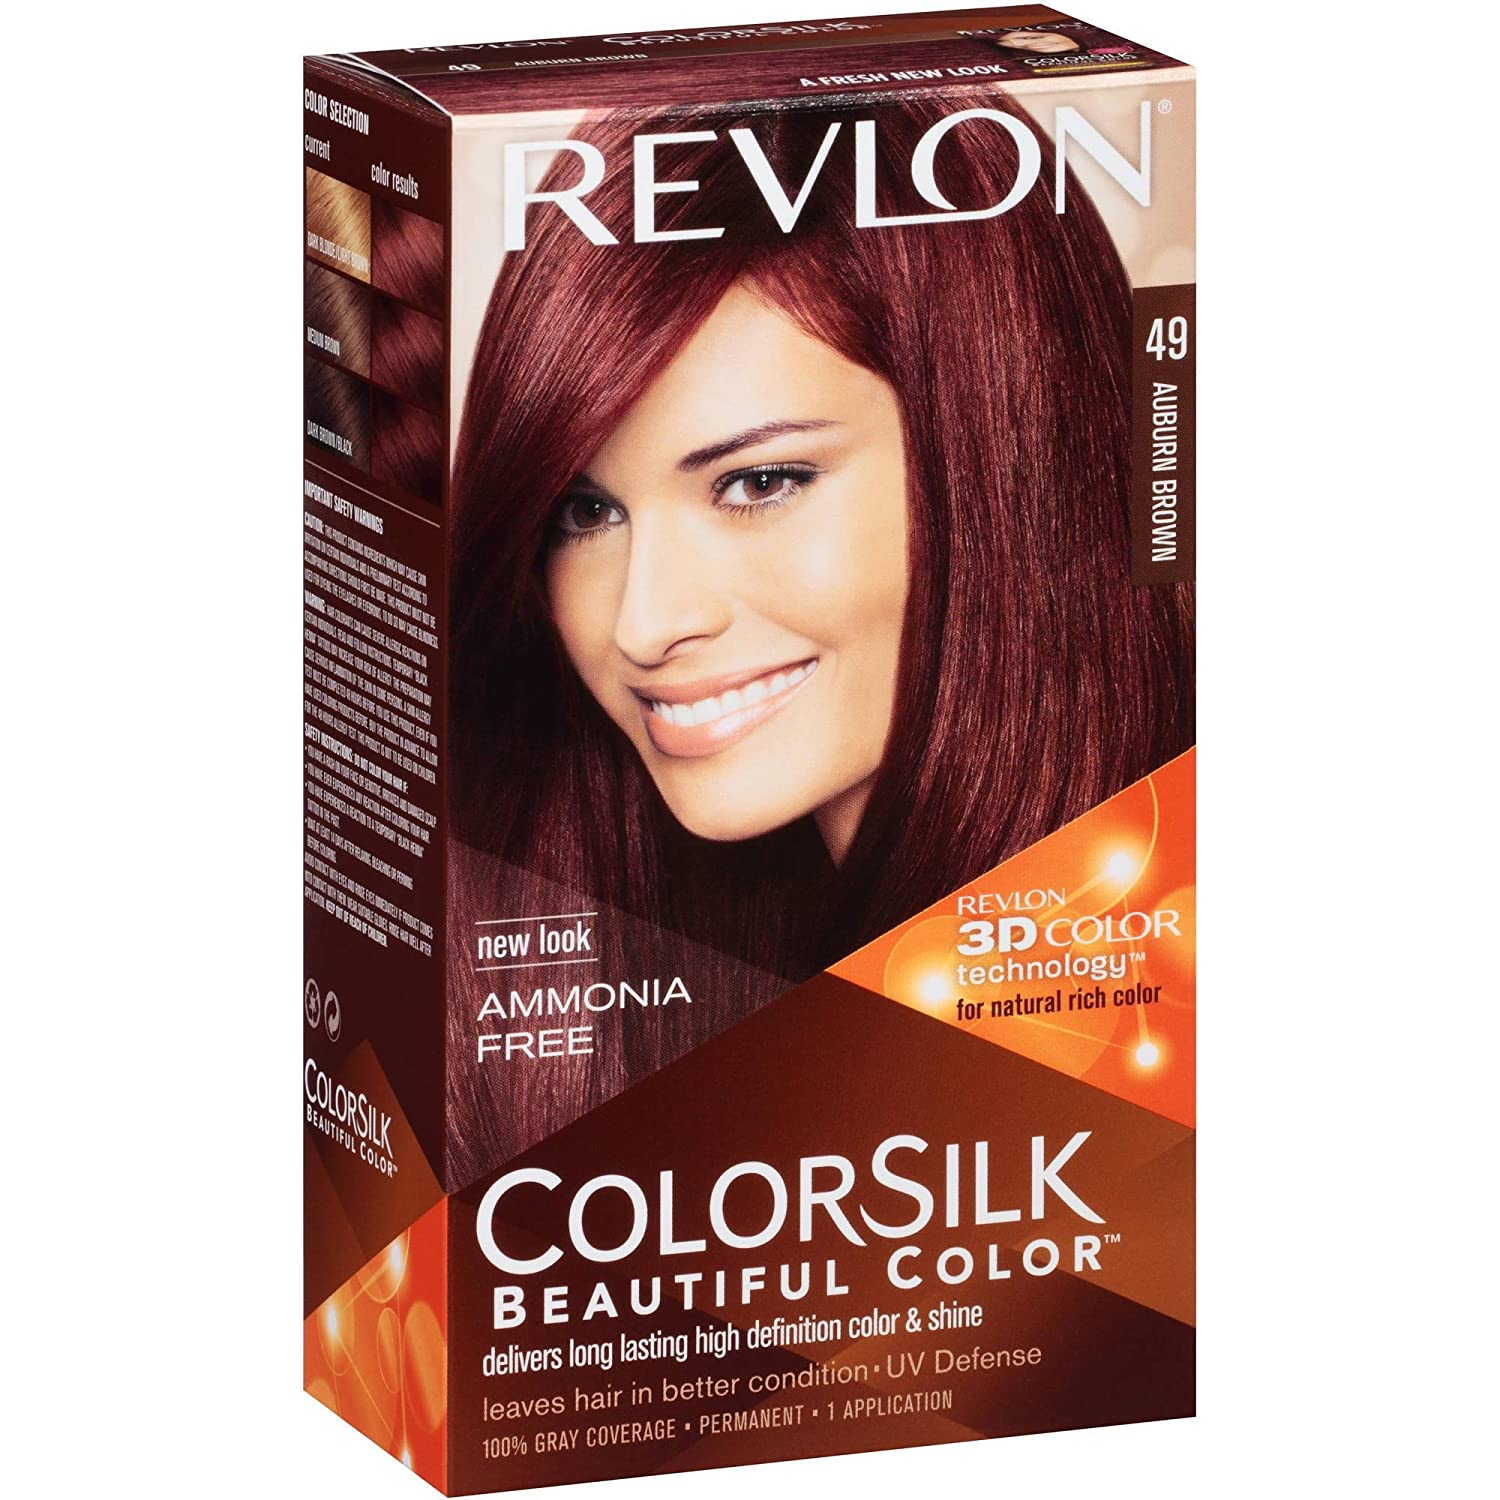 revlon coloration permanente colorsilk beautiful color couleur radieuse longue tenue couleur 49 brun auburn - Coloration Brun Auburn